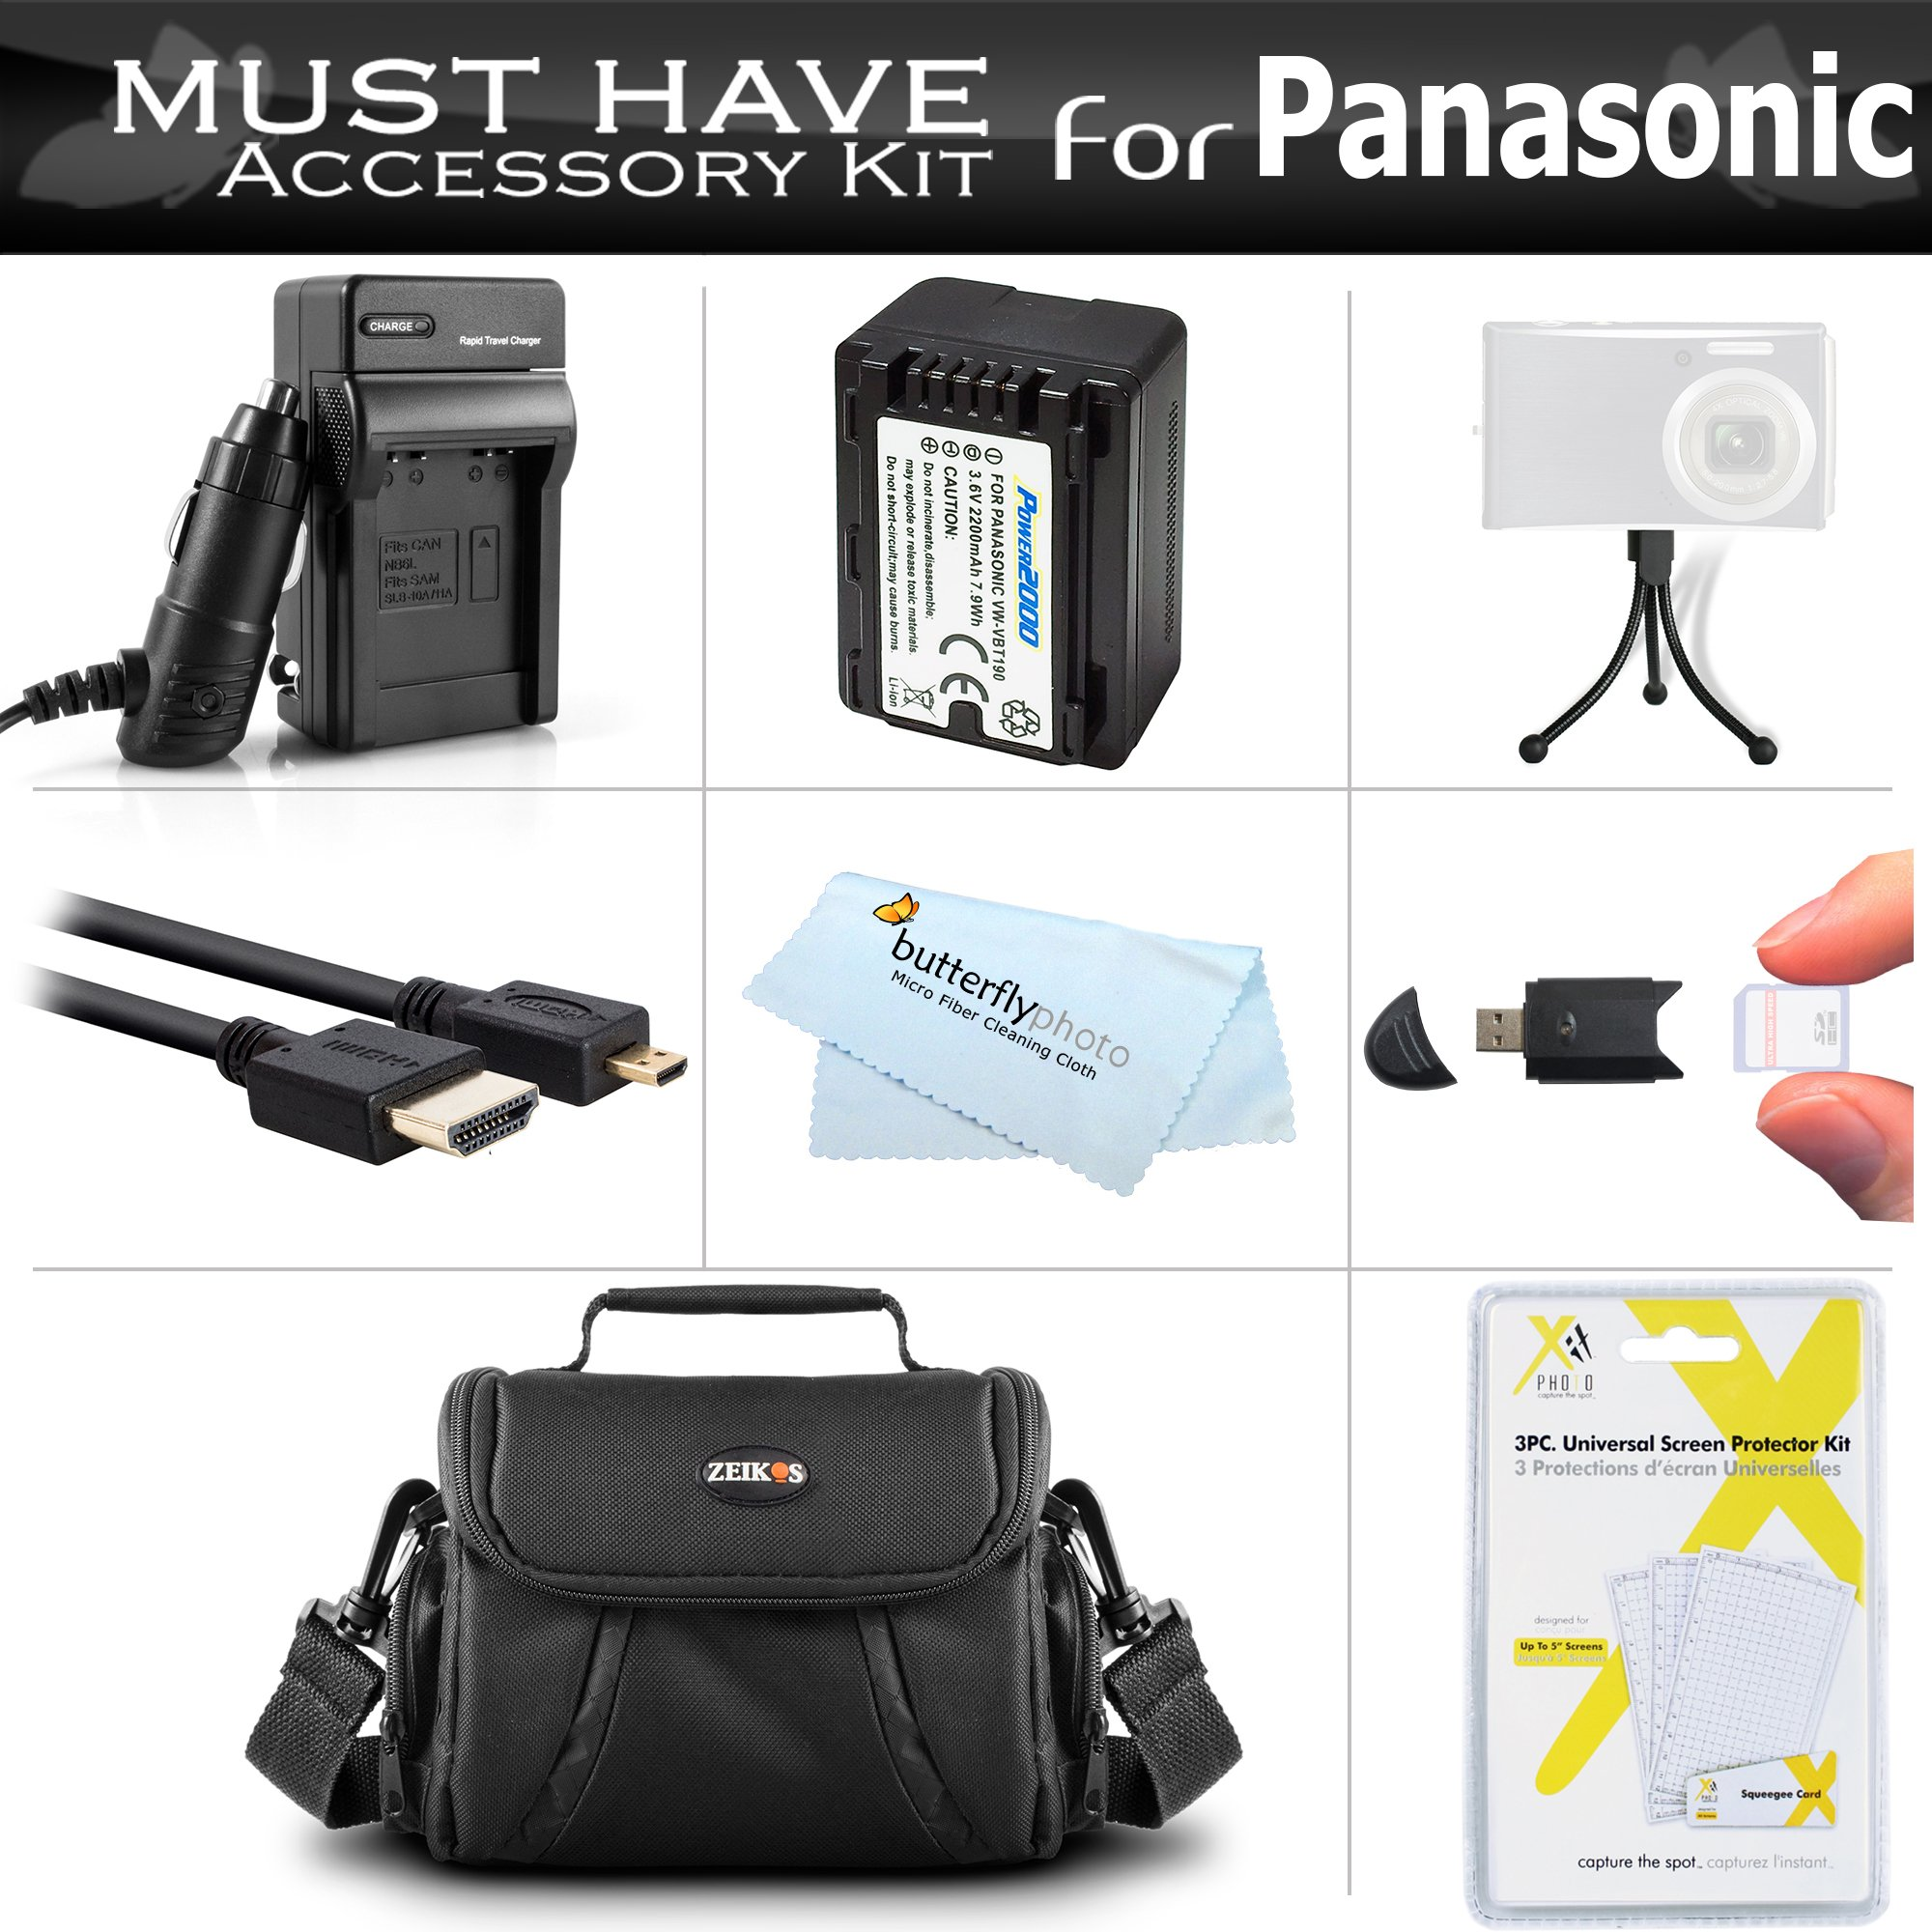 Must Have Accessory Kit For Panasonic HC-V180K, HC-WXF991K, HC-W580K, HC-V380K, HC-VX981K, HC-VX870K, HC-V770K, HC-WX970K HD Camcorder Includes Replacement VW-VBT190 Battery + Charger + Case + More